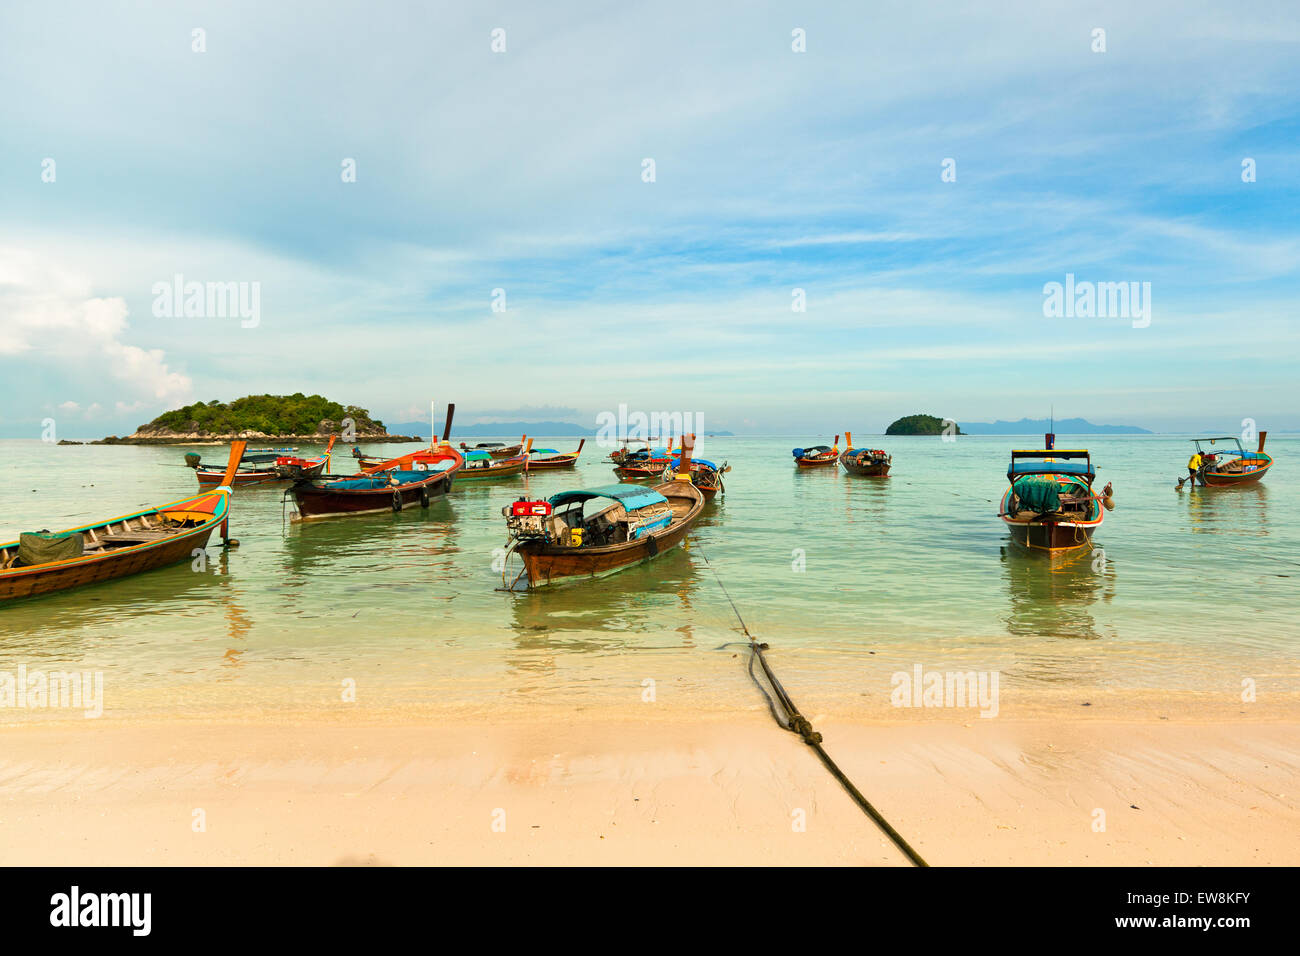 Traditional thai boats on the beach, Koh Lipe, Thailand. - Stock Image